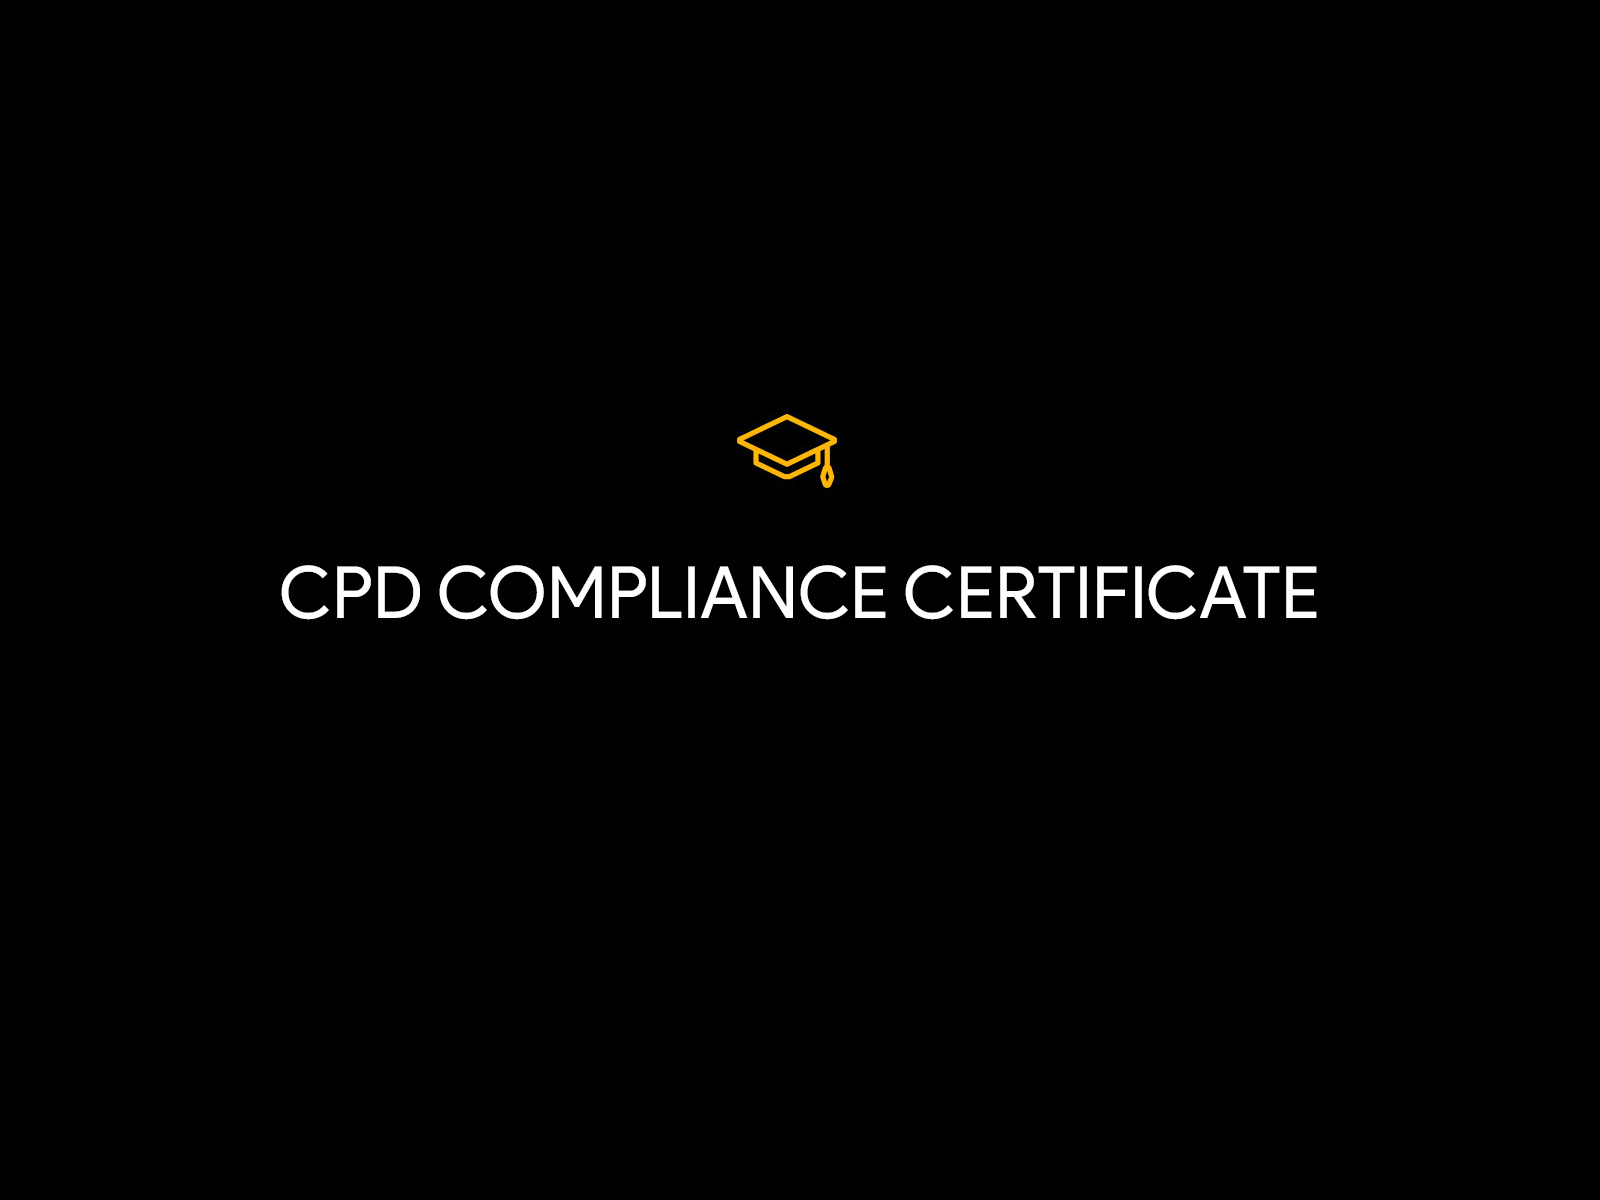 cpd-compliance